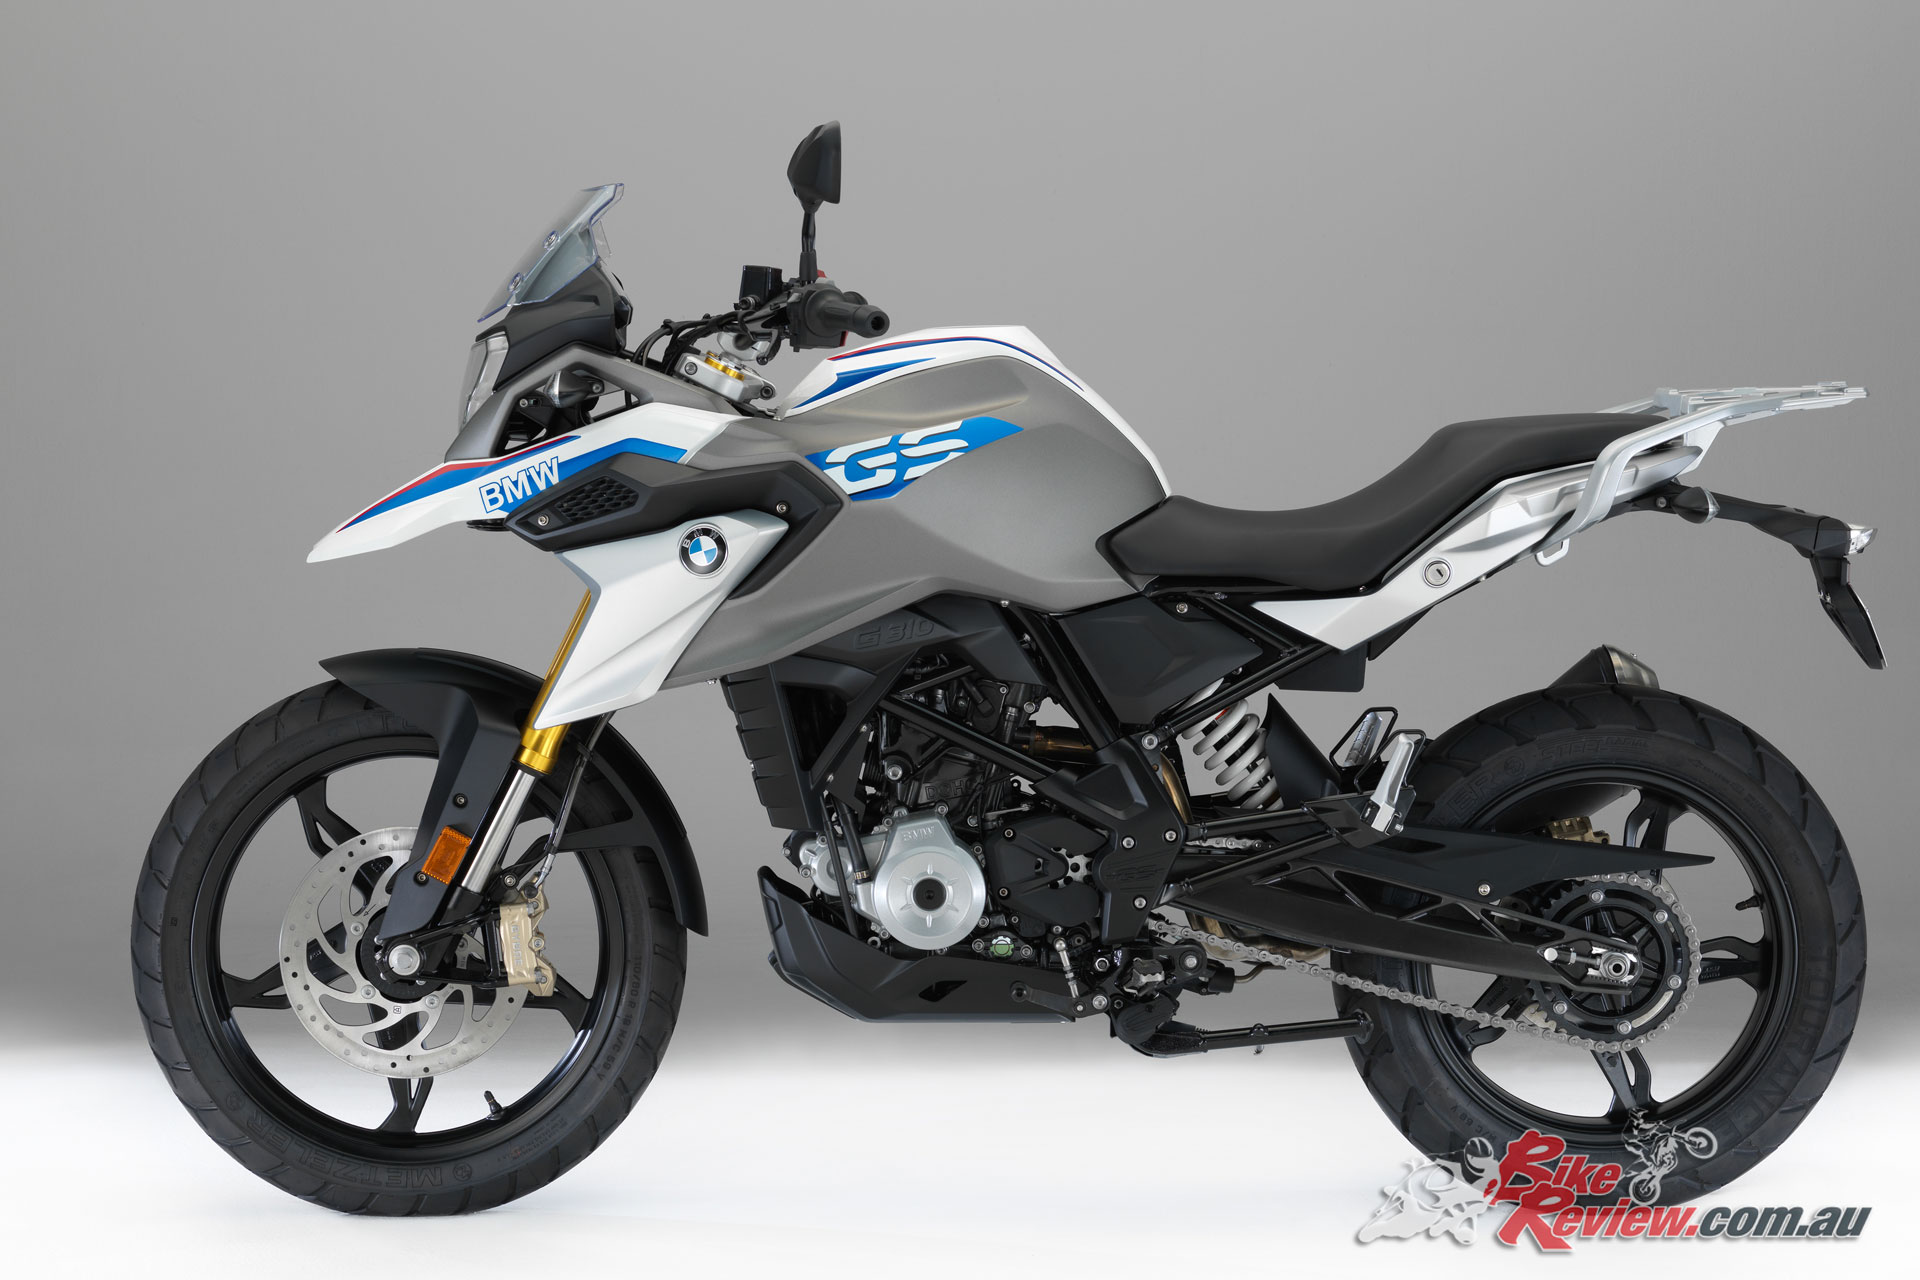 The G 310 GS offers the ideal entry point for new riders